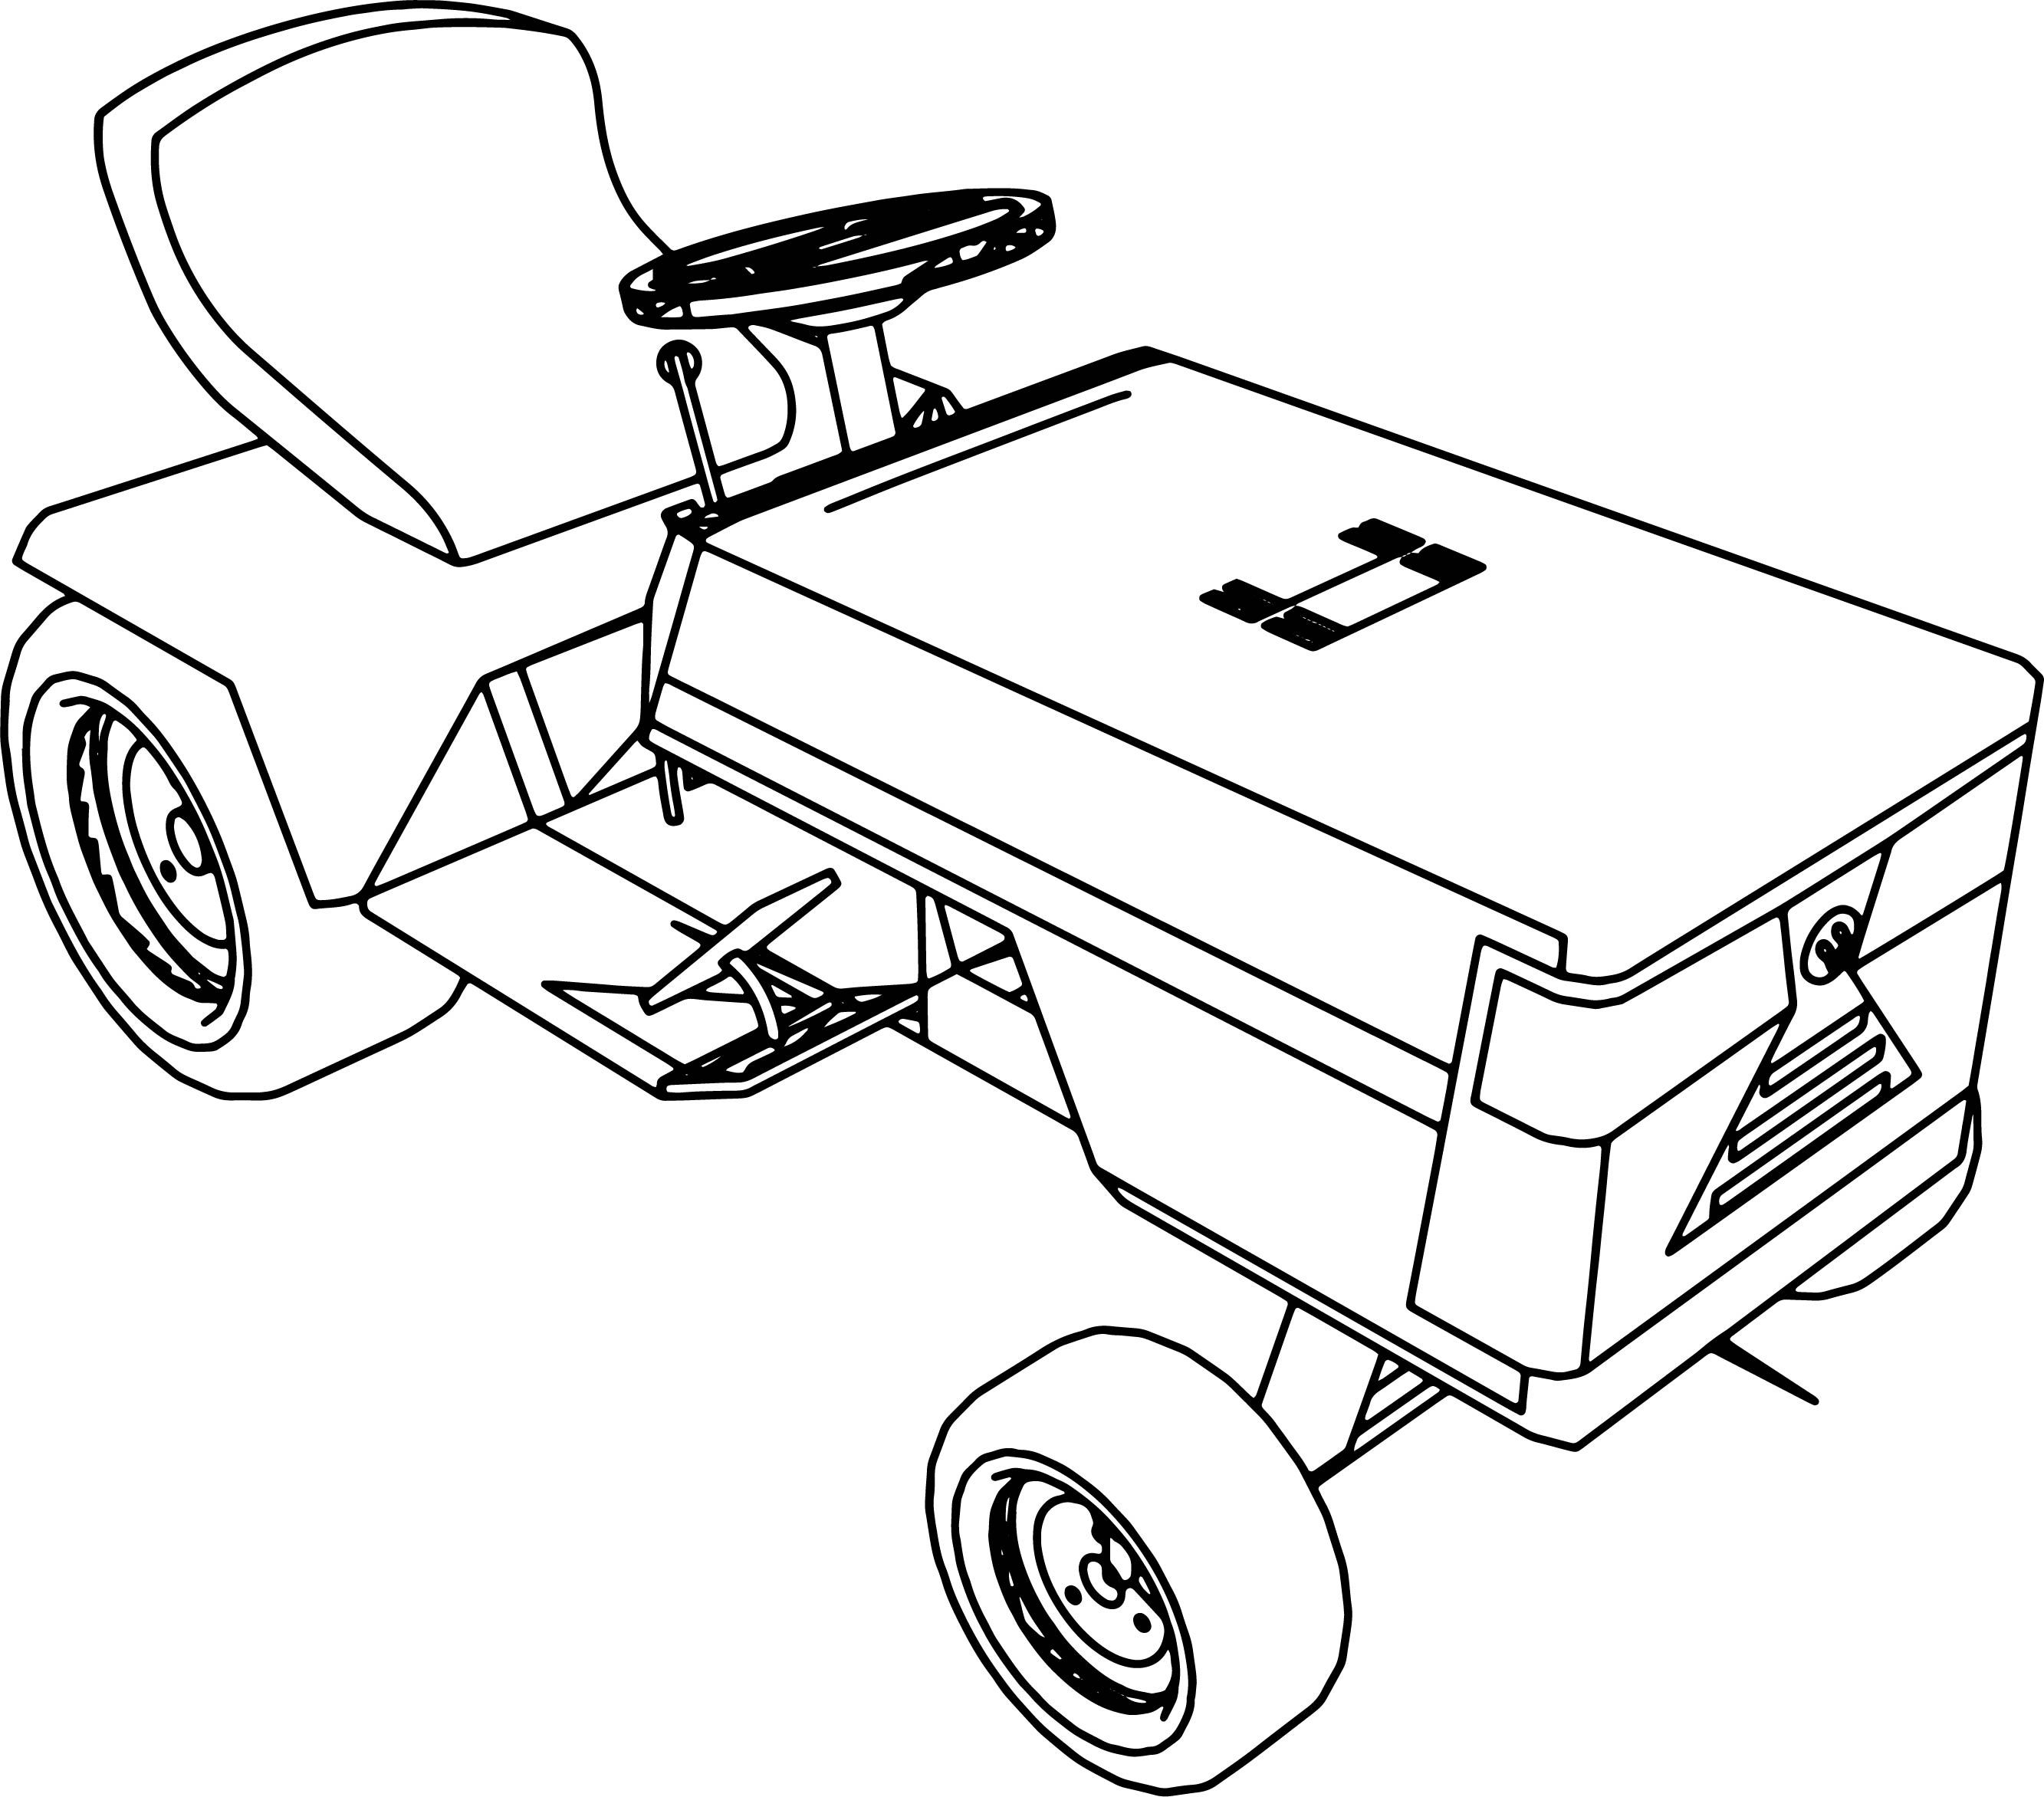 Up Graded Briggs And Stratton Craftsman Lawnmower Coloring Page Coloring Pages Coloring Sheets For Kids Coloring Pages For Kids